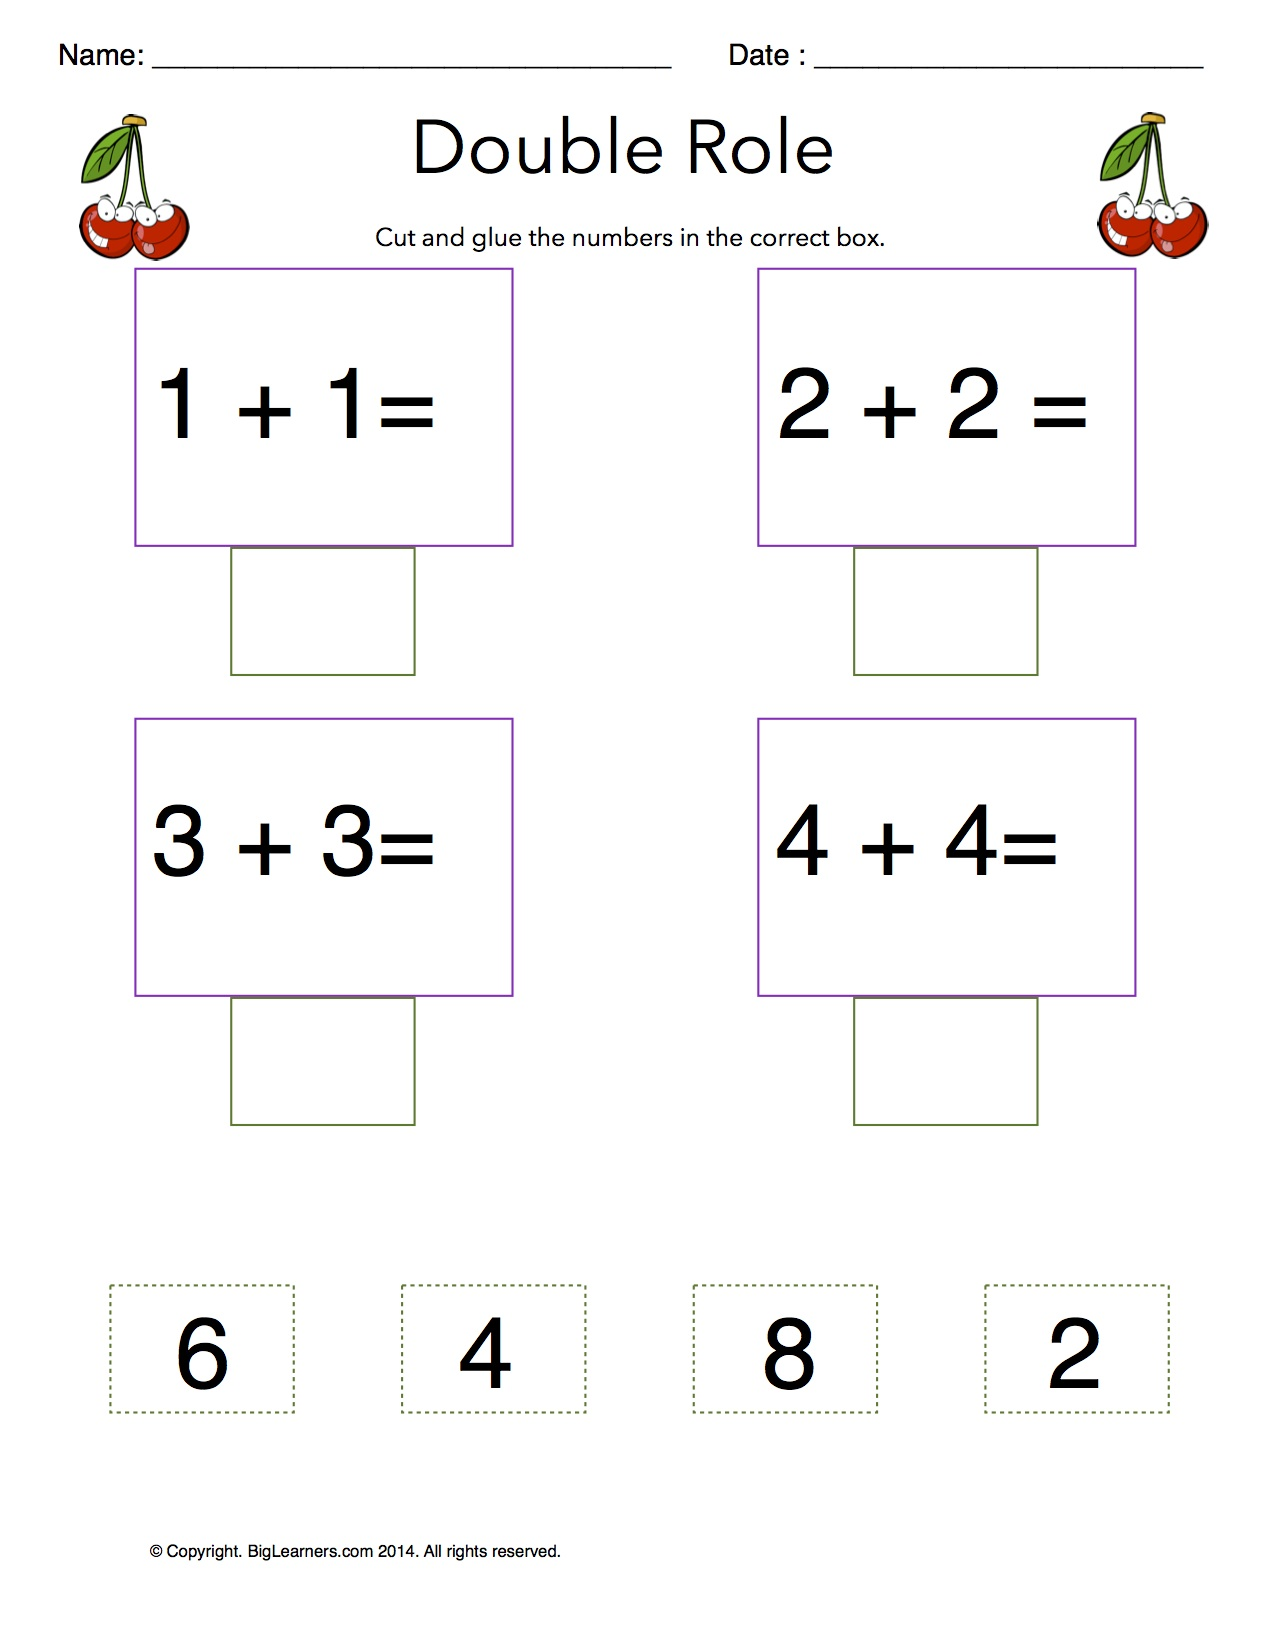 Free math worksheets for 1st grade doubles